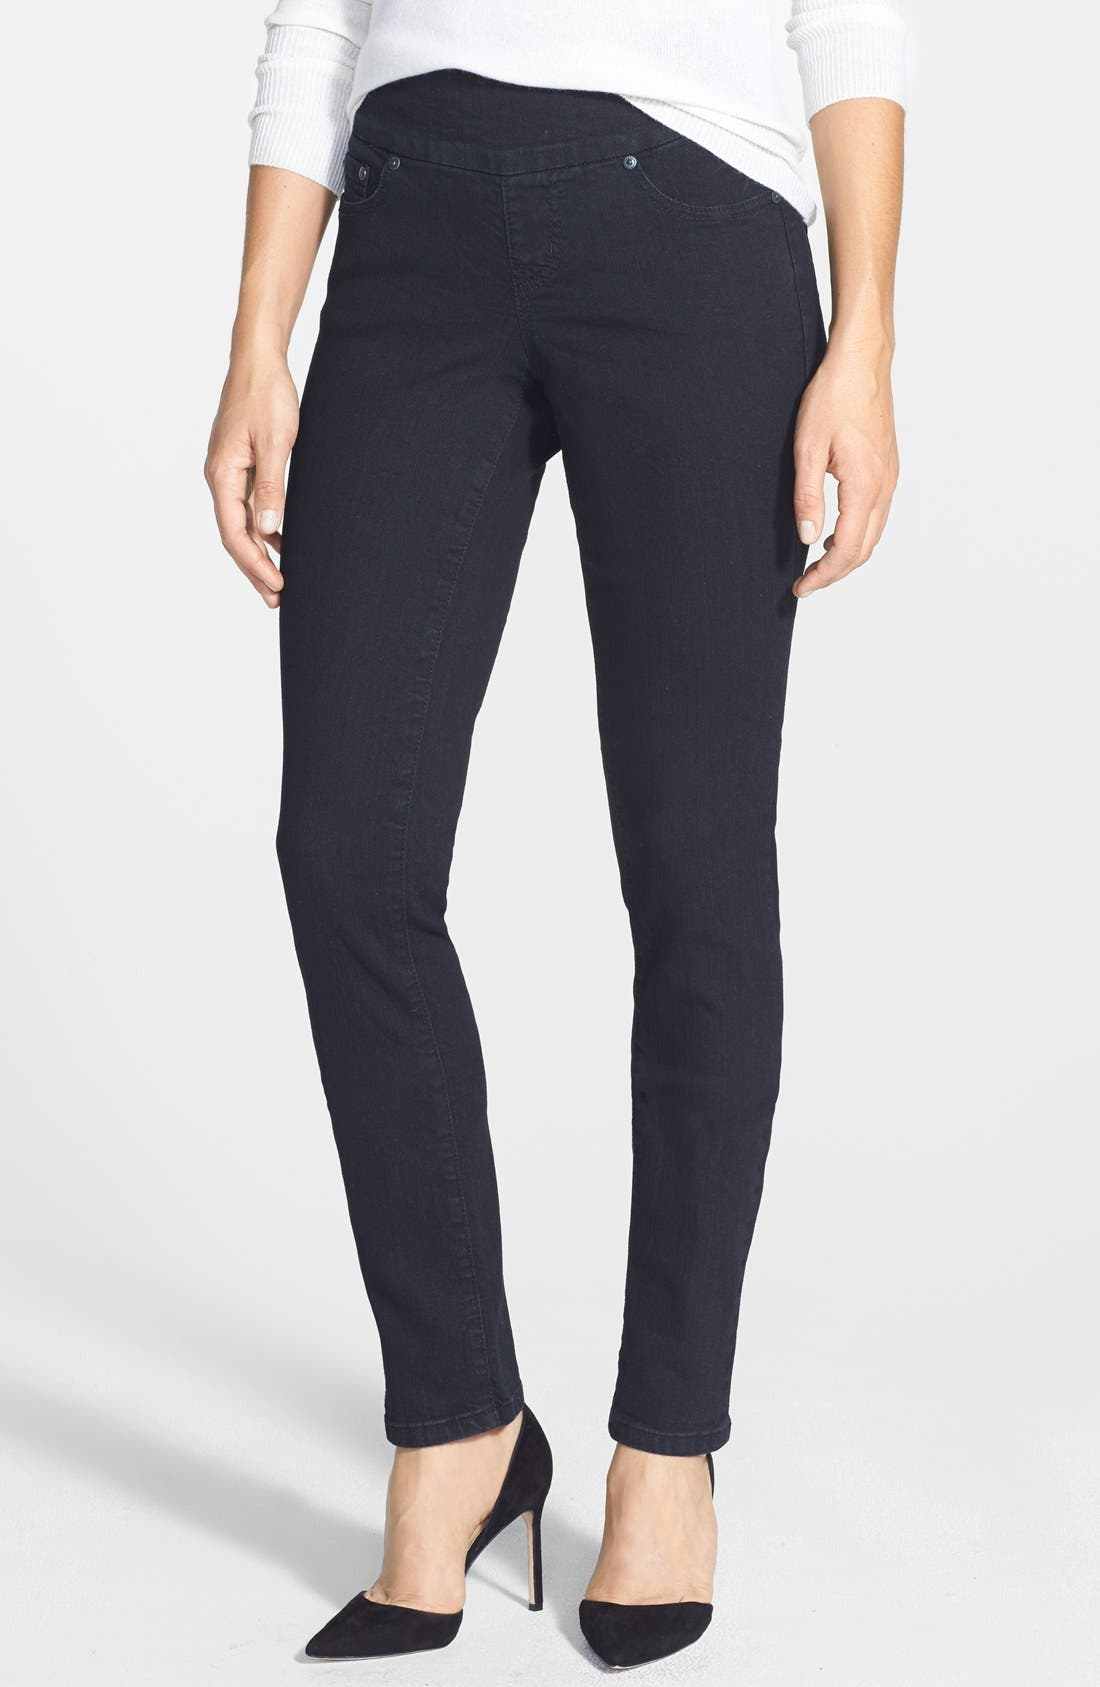 JAG JEANS 'Malia' Pull-On Stretch Slim Jeans